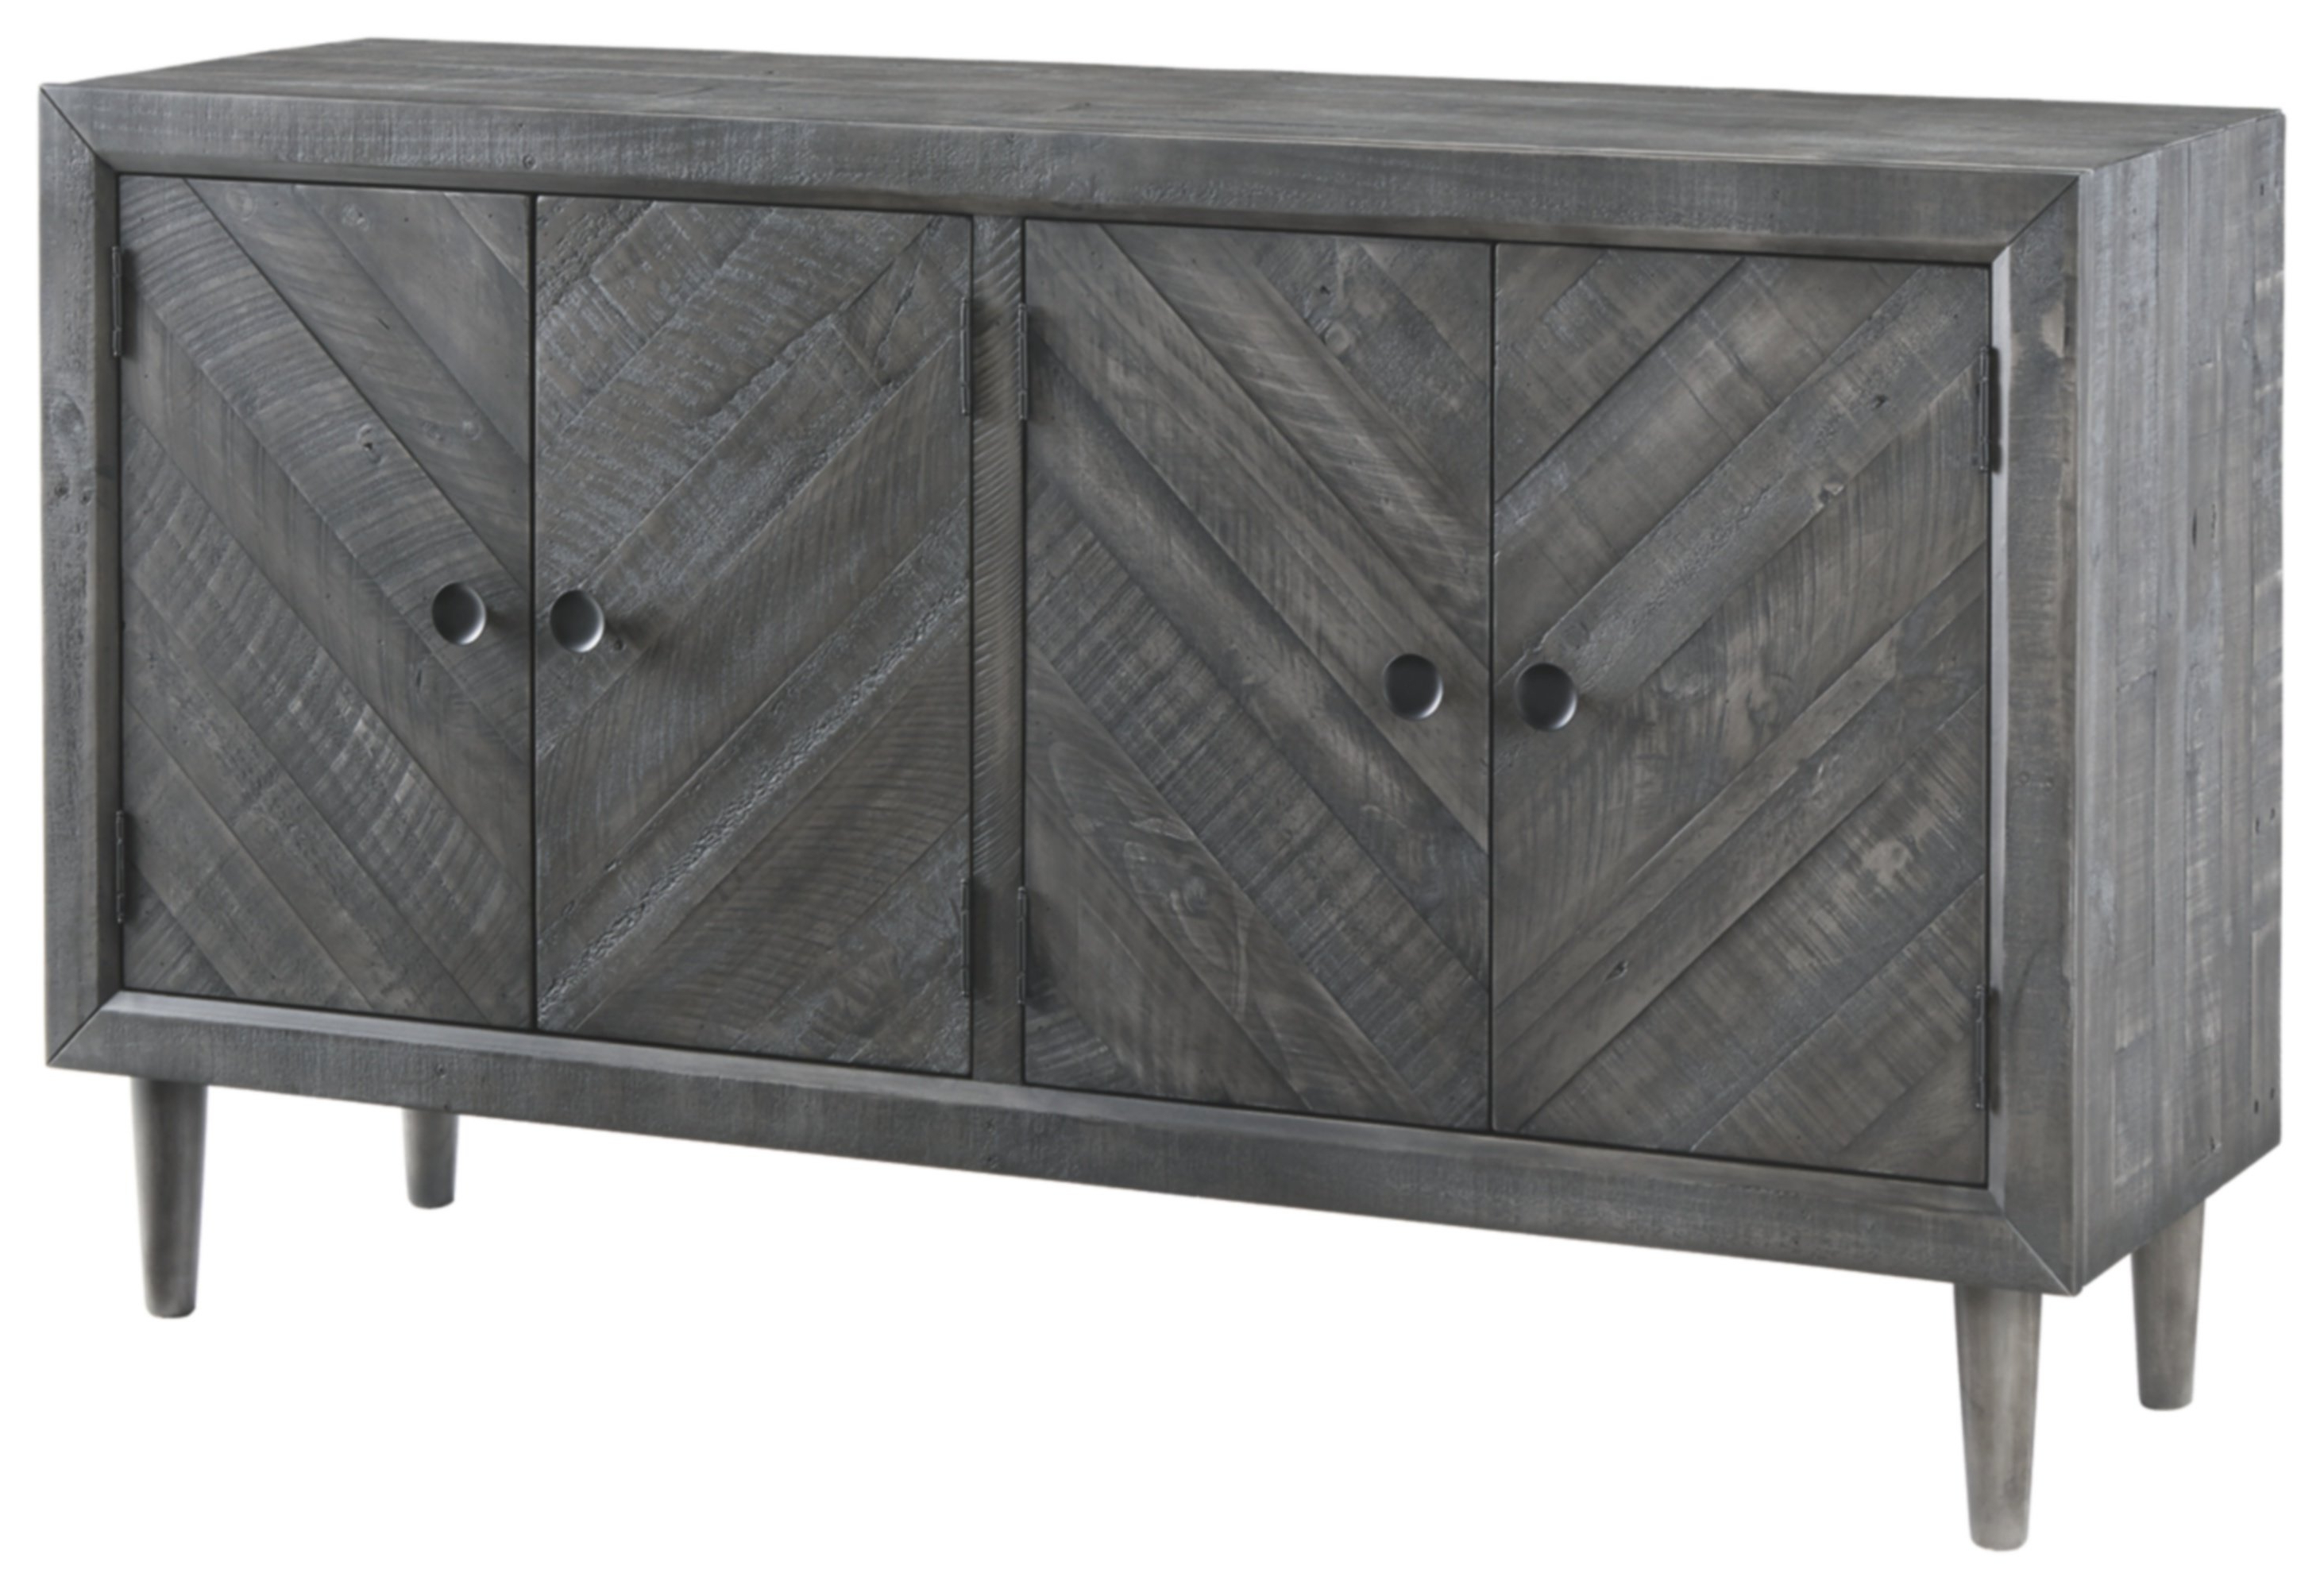 Banach Sideboard Pertaining To Most Recent Mauldin 3 Door Sideboards (View 18 of 20)